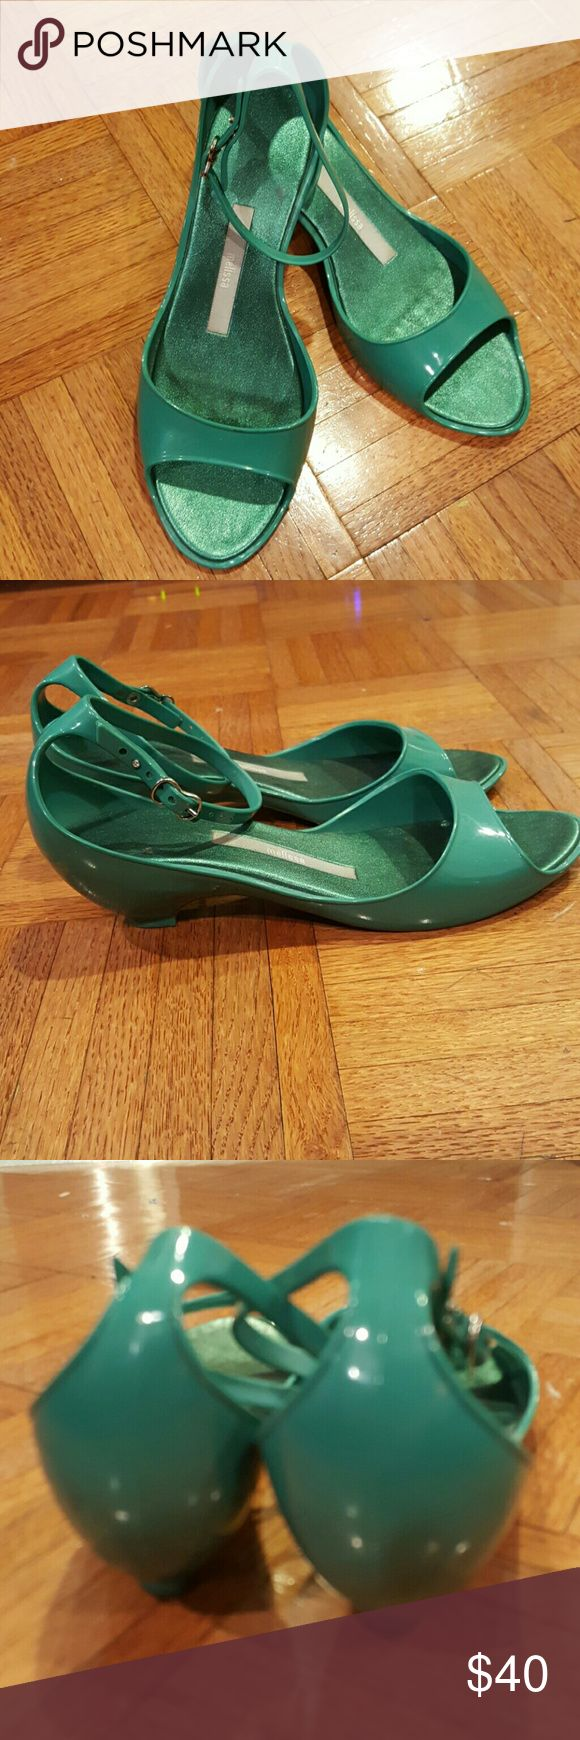 ??Melissa turquoise jellies Made in Brazil  In like new condition Melissa Shoes Sandals